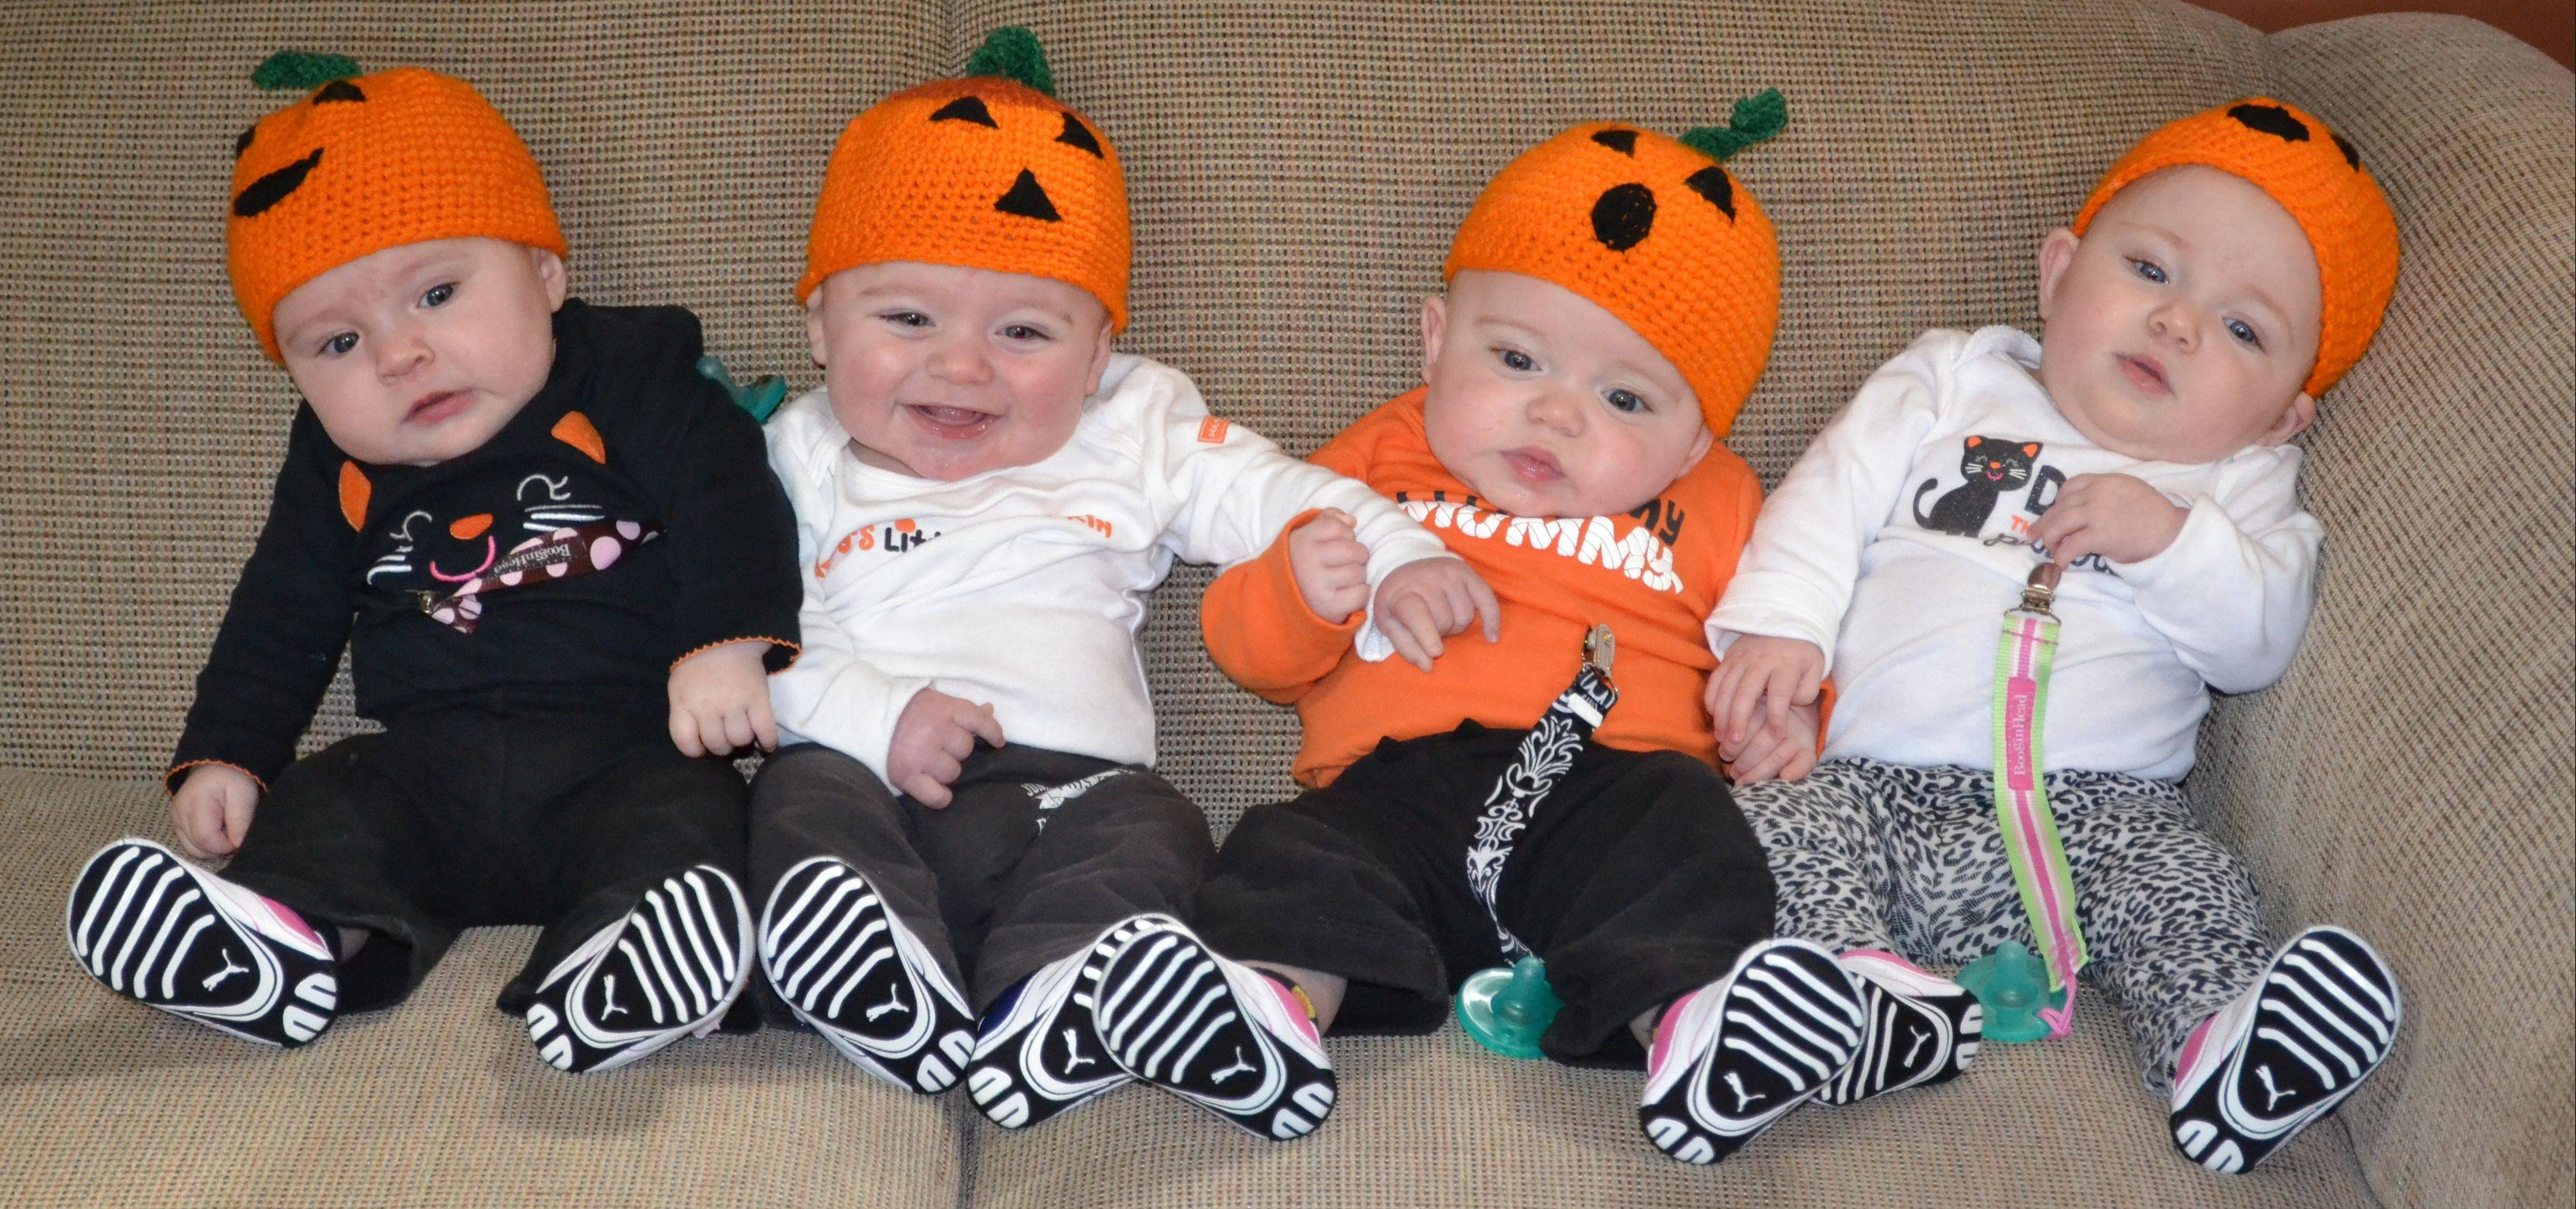 Clare, Landon, Maya and Olivia Fraley in their Halloween outfits. Their parents, Beth and Lane Fraley of Wood Dale, is thankful this year for the doctors, family and friends who guided the first-time parents through the ups and downs of having quadruplets.